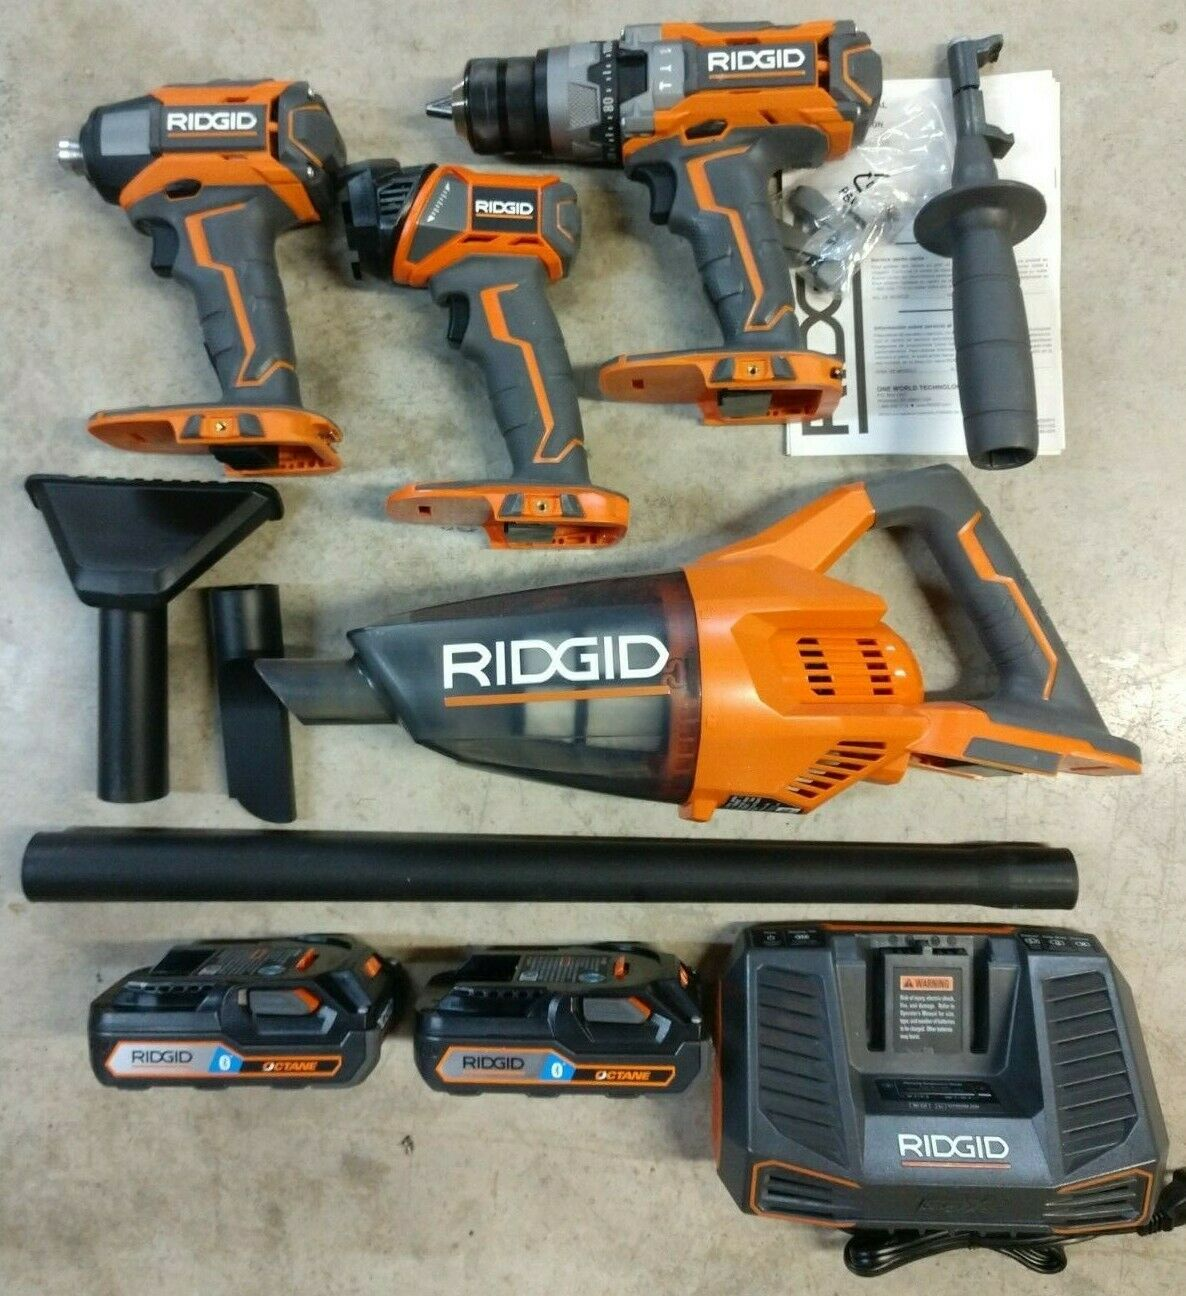 RIDGID 18V Cordless 4 Tool Combo Kit w/ 2 Battery & Charger